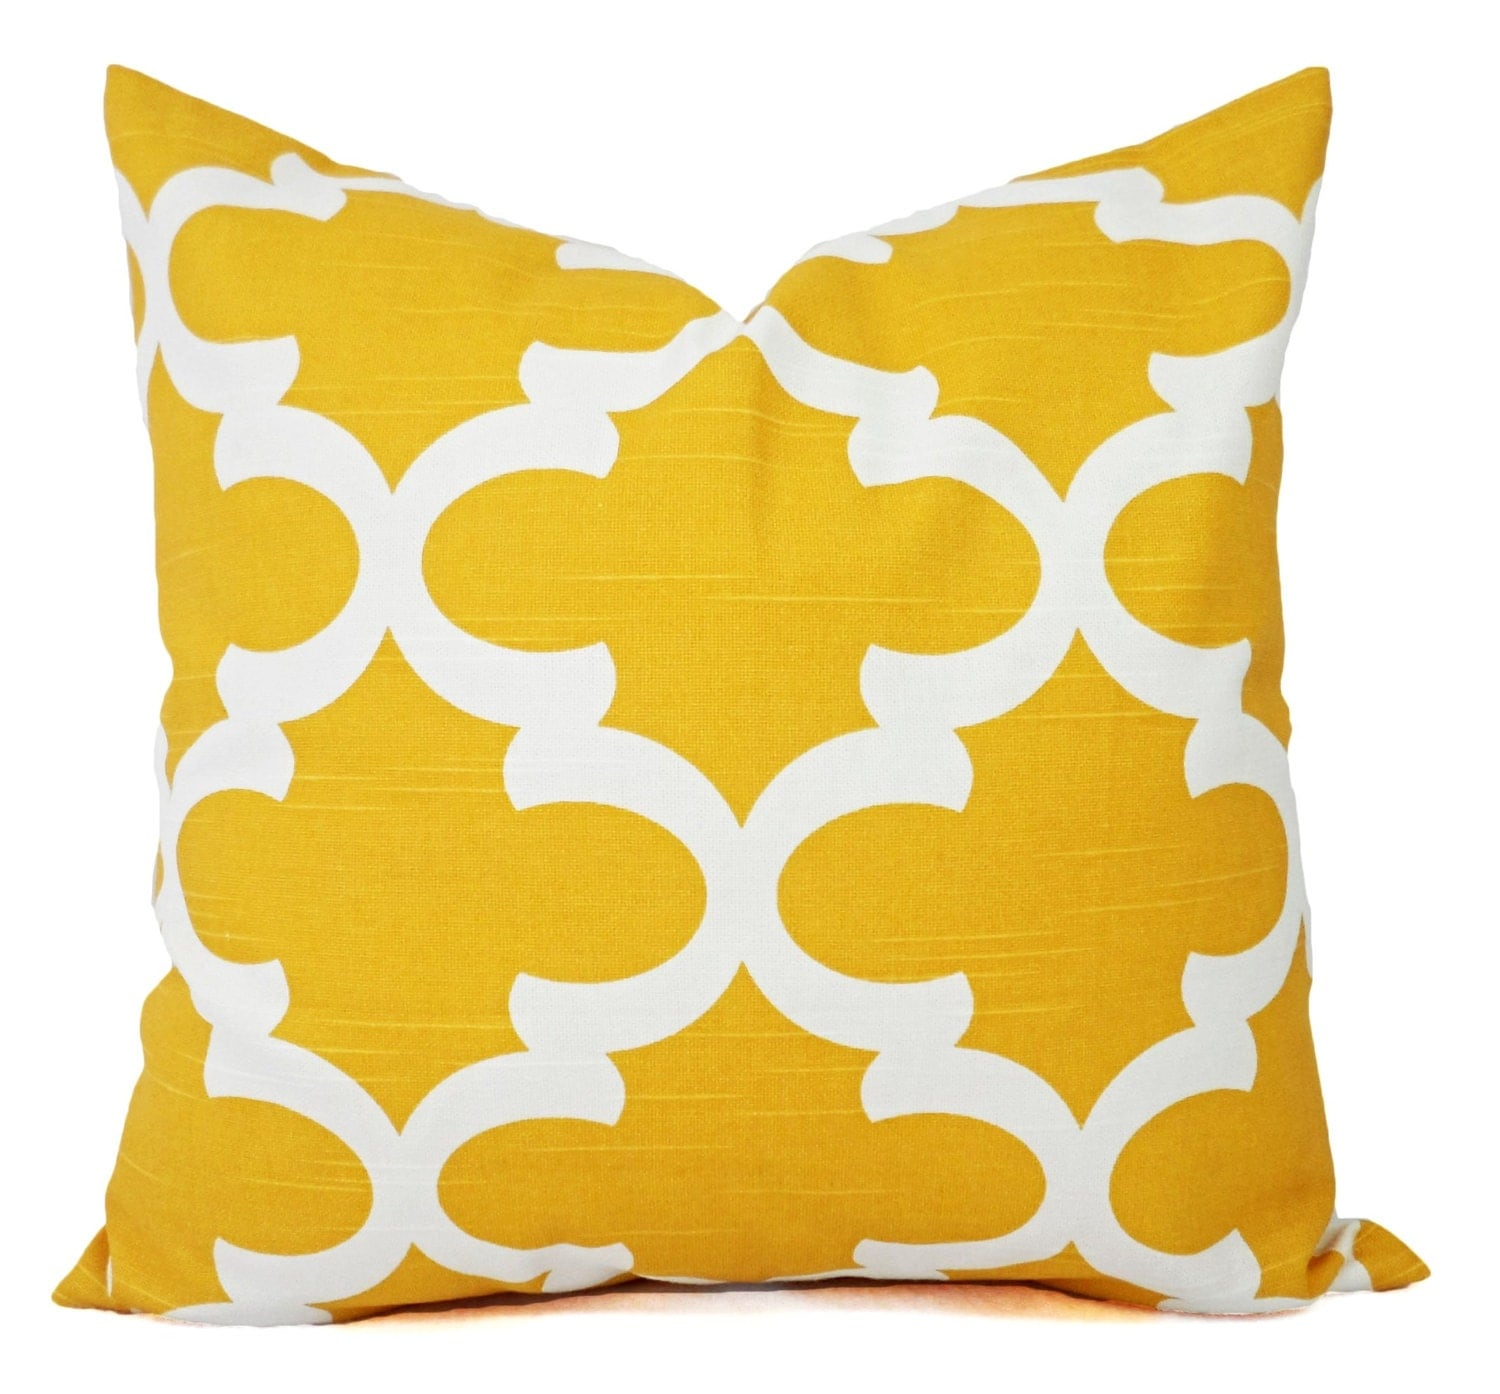 Yellow And Red Decorative Pillows : Yellow Decorative Pillows Two Yellow Throw Pillow Covers